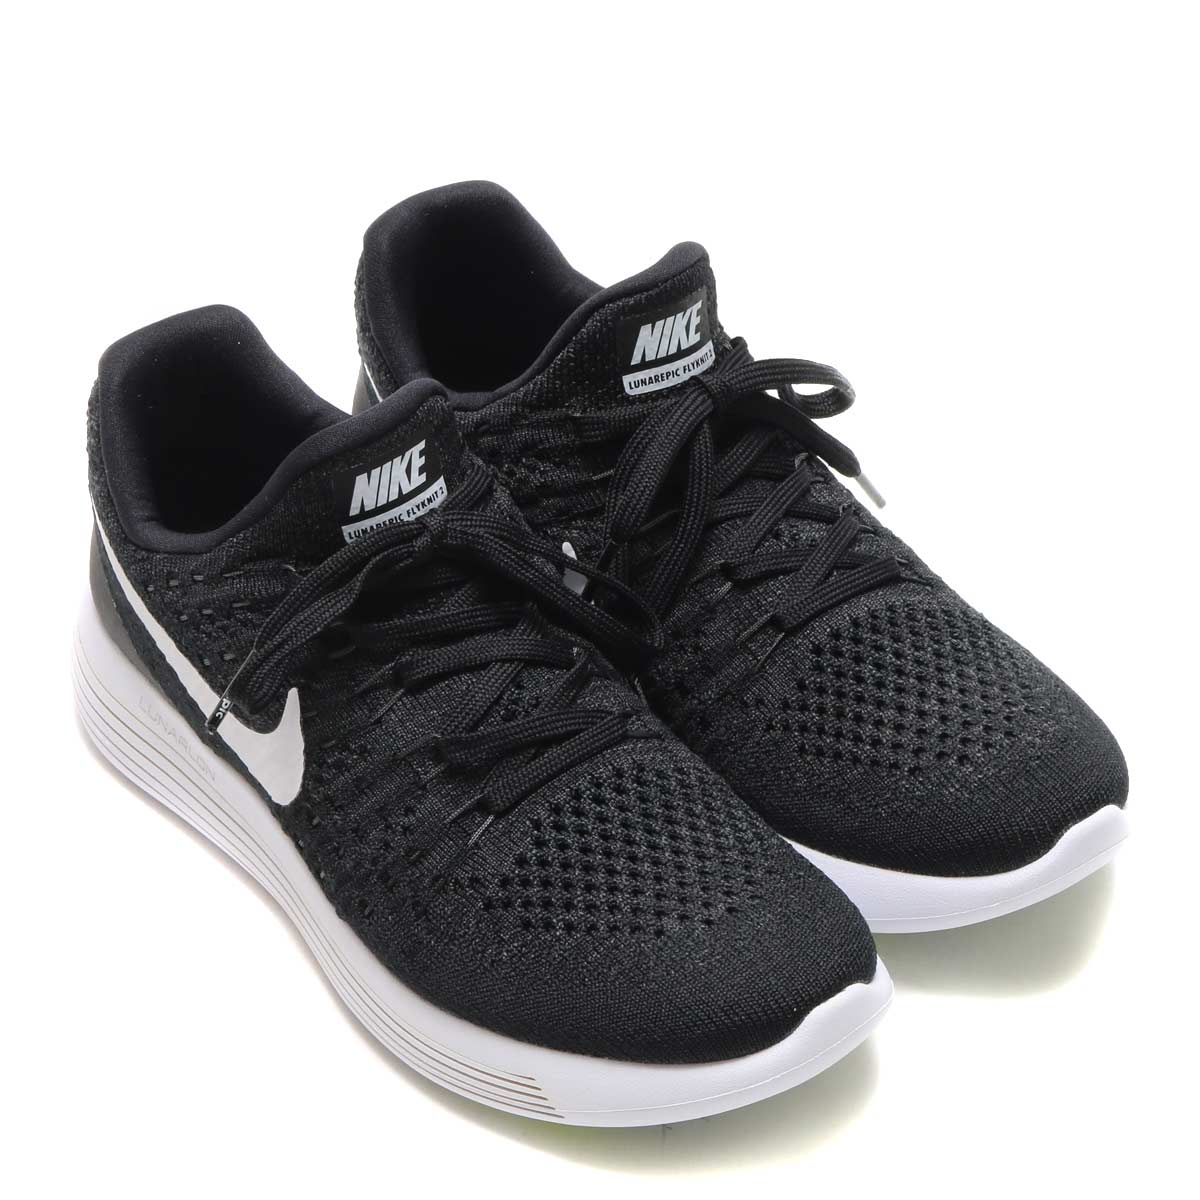 0f4682027adb6 NIKE W LUNAREPIC LOW FLYKNIT 2 (Nike women luna epic loaf rye knit 2) (BLACK  WHITE-ANTHRACITE) 17SP-S